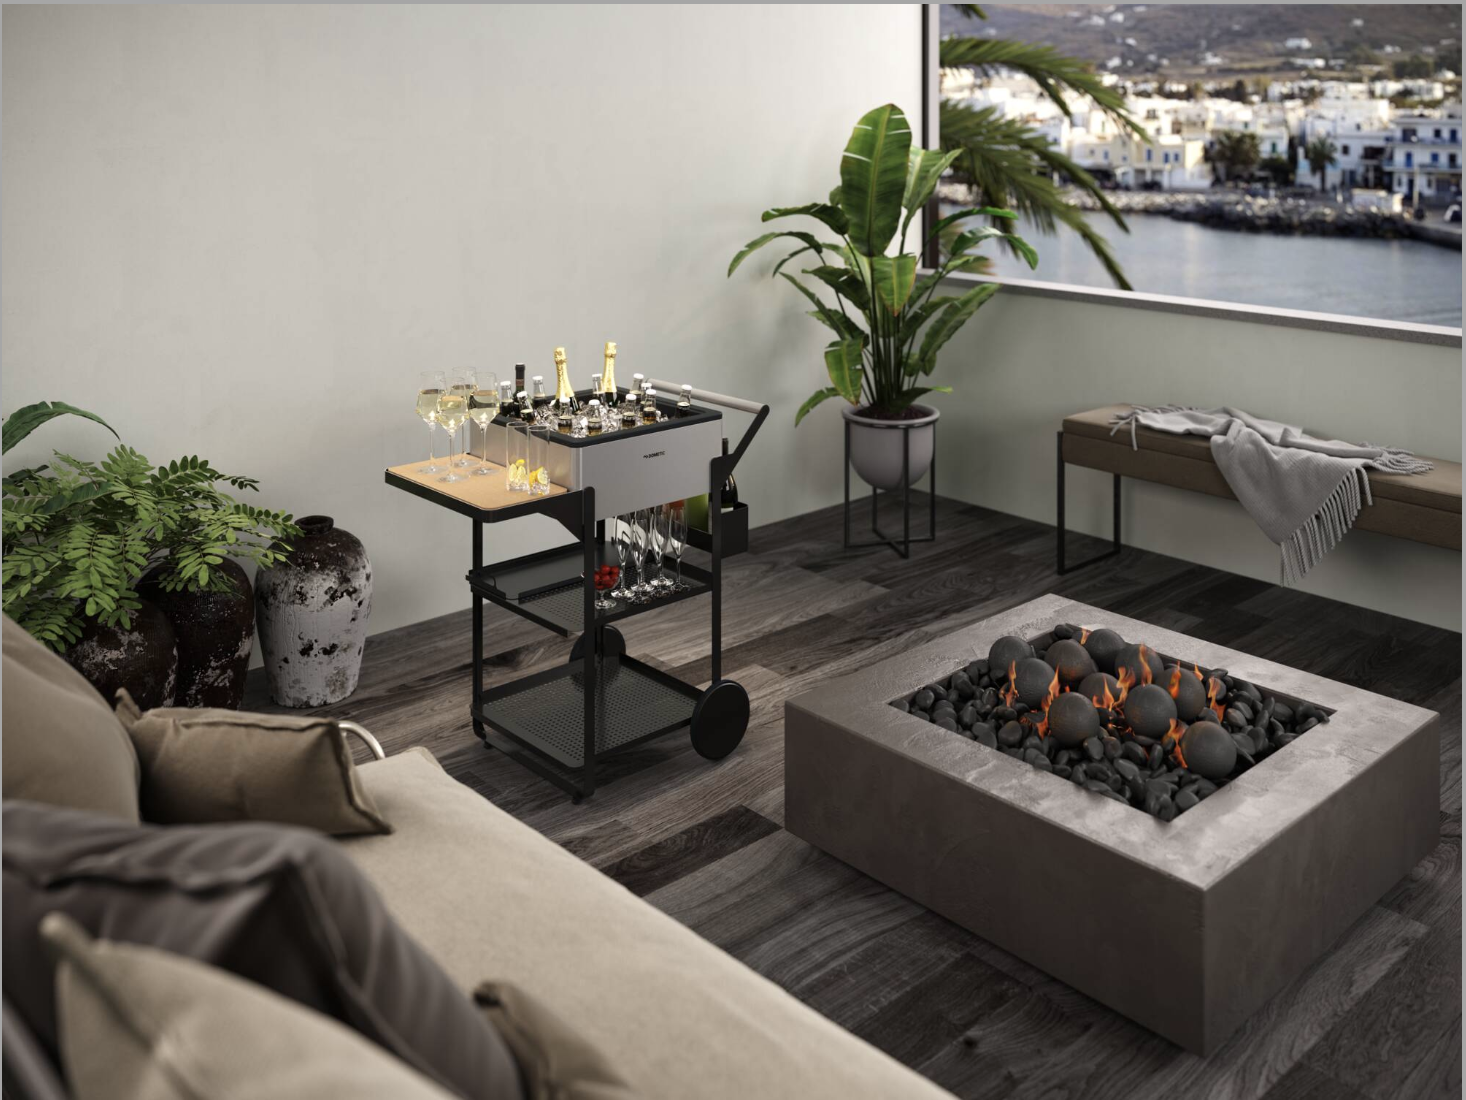 The compact Dometic MoBar 50 can fit on a terrace or balcony or at a pop-up event.